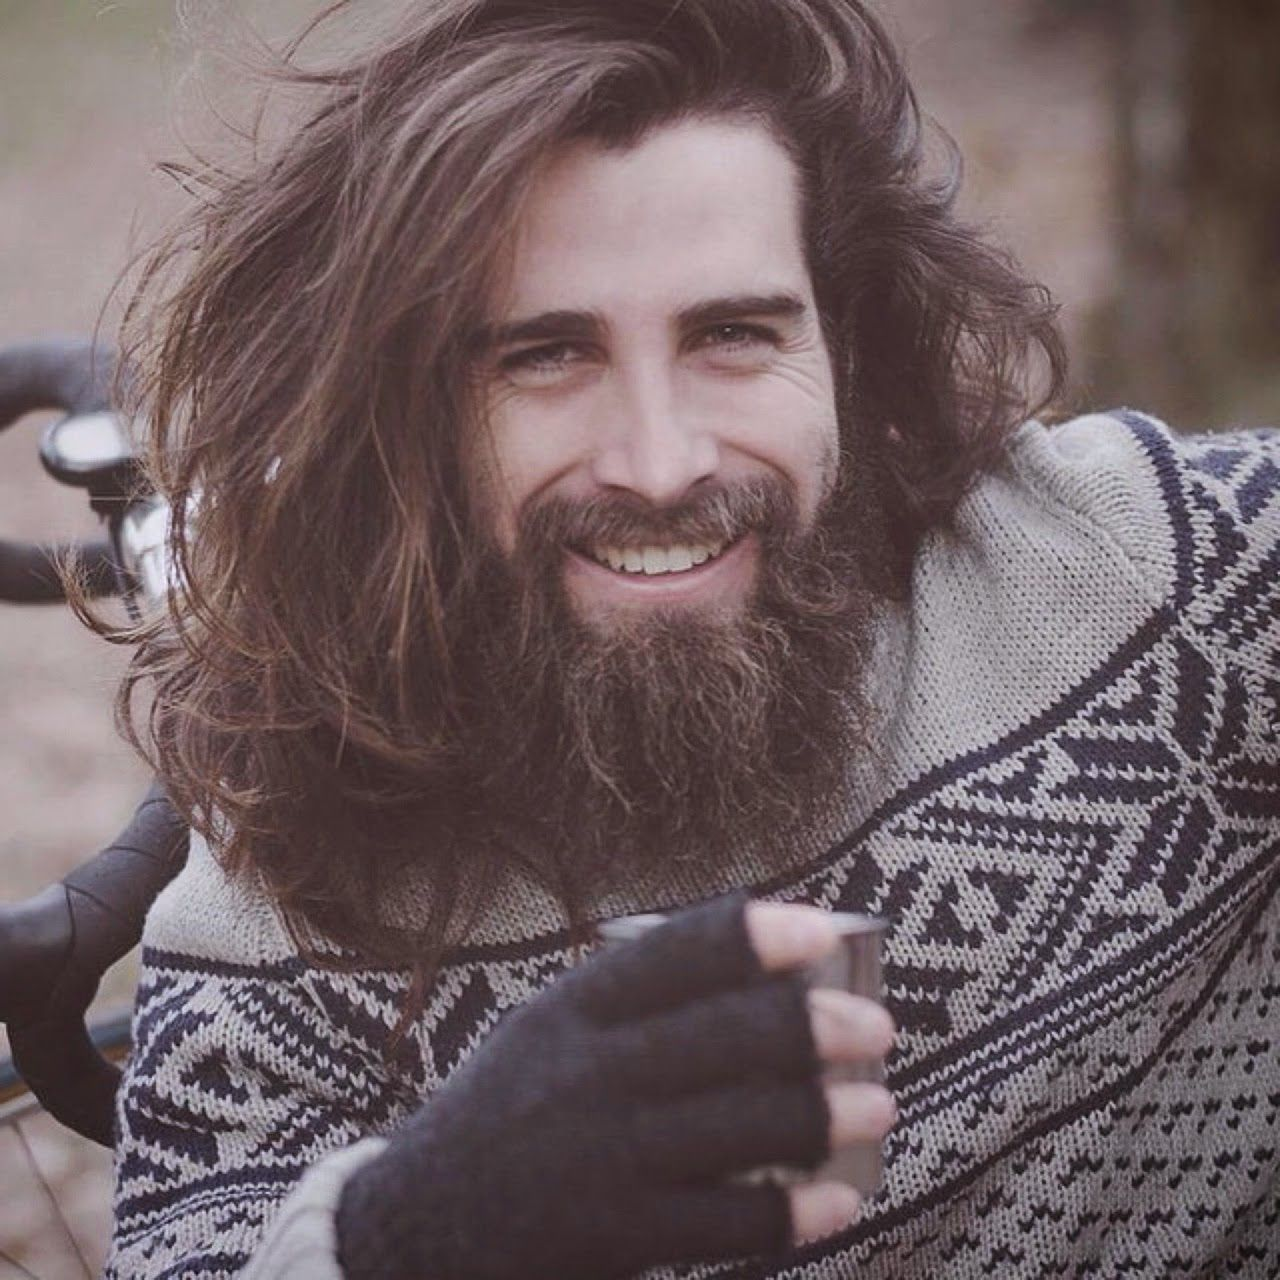 stylish beard mens with long hair and tattoo tumblr - Pesquisa Google